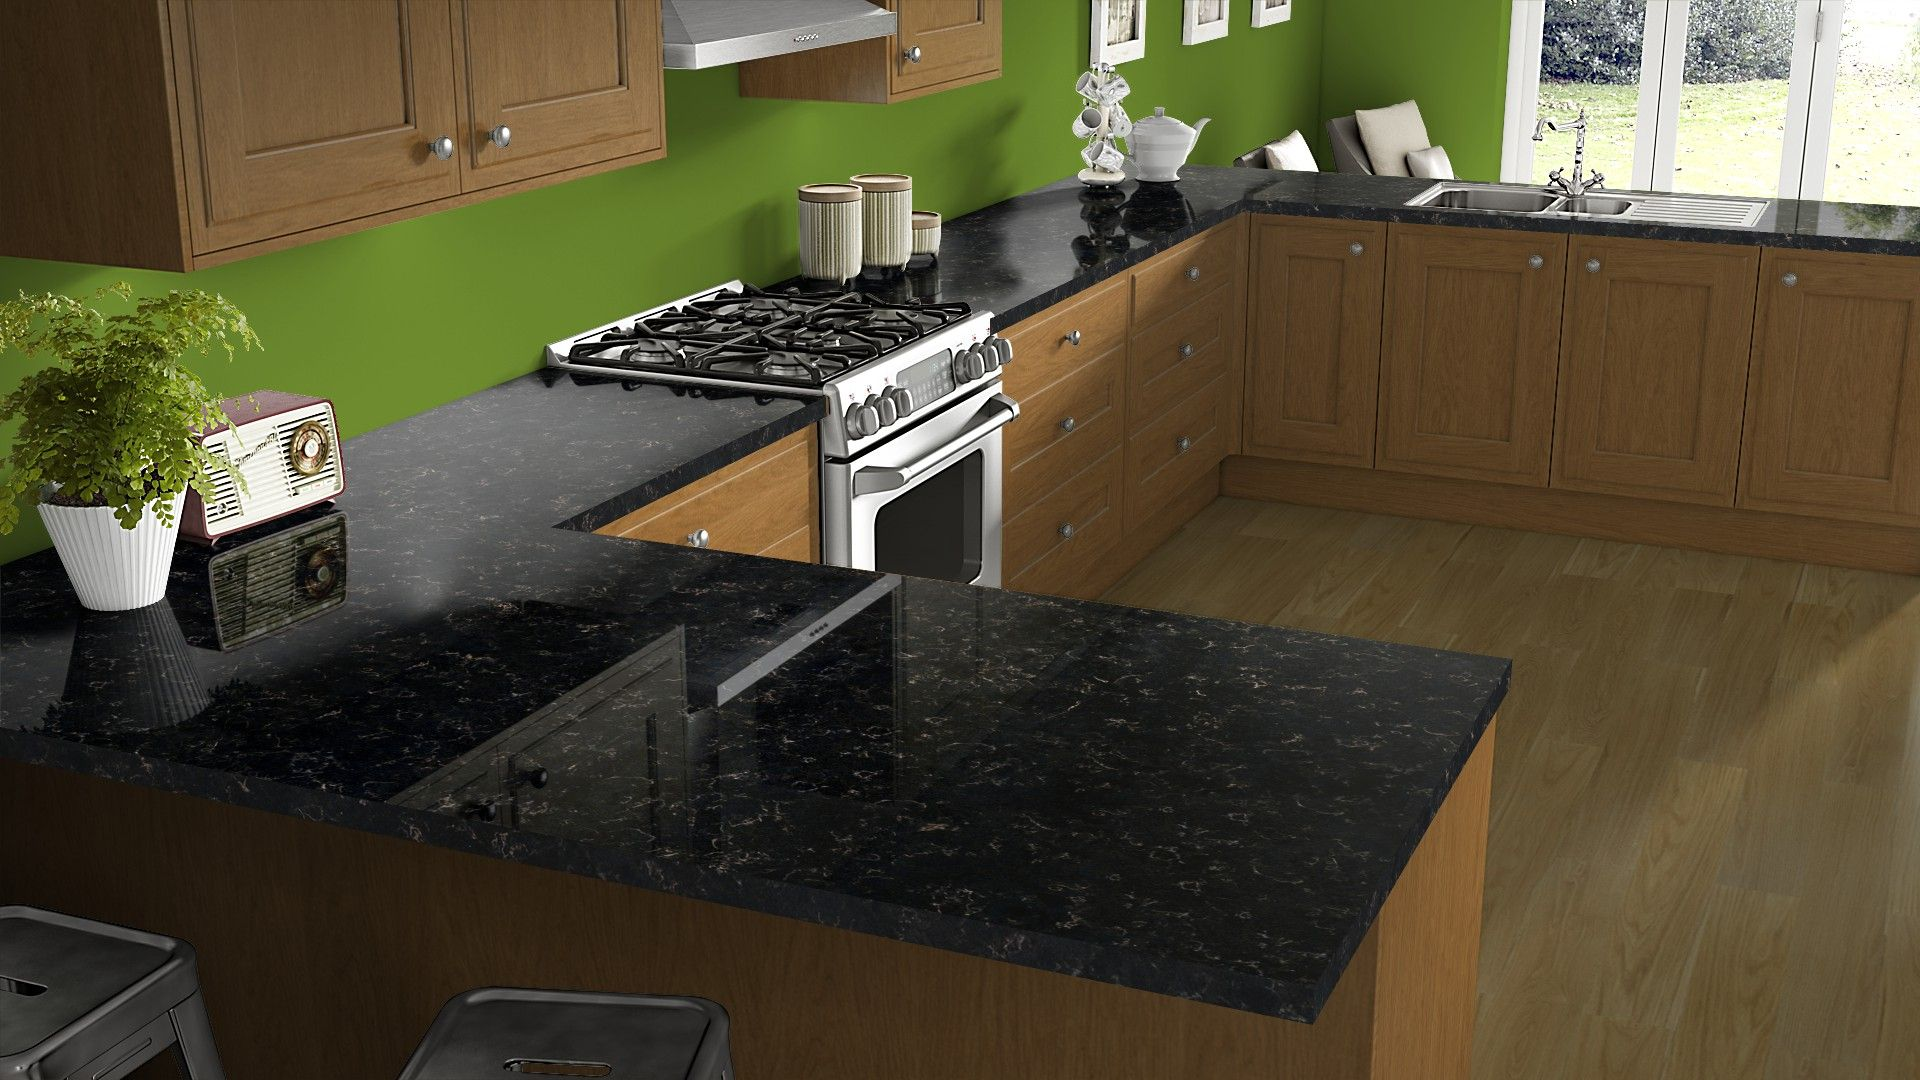 XCaret High Gloss Finish Get Inspired For Your Kitchen - How to get your kitchen remodeled for free